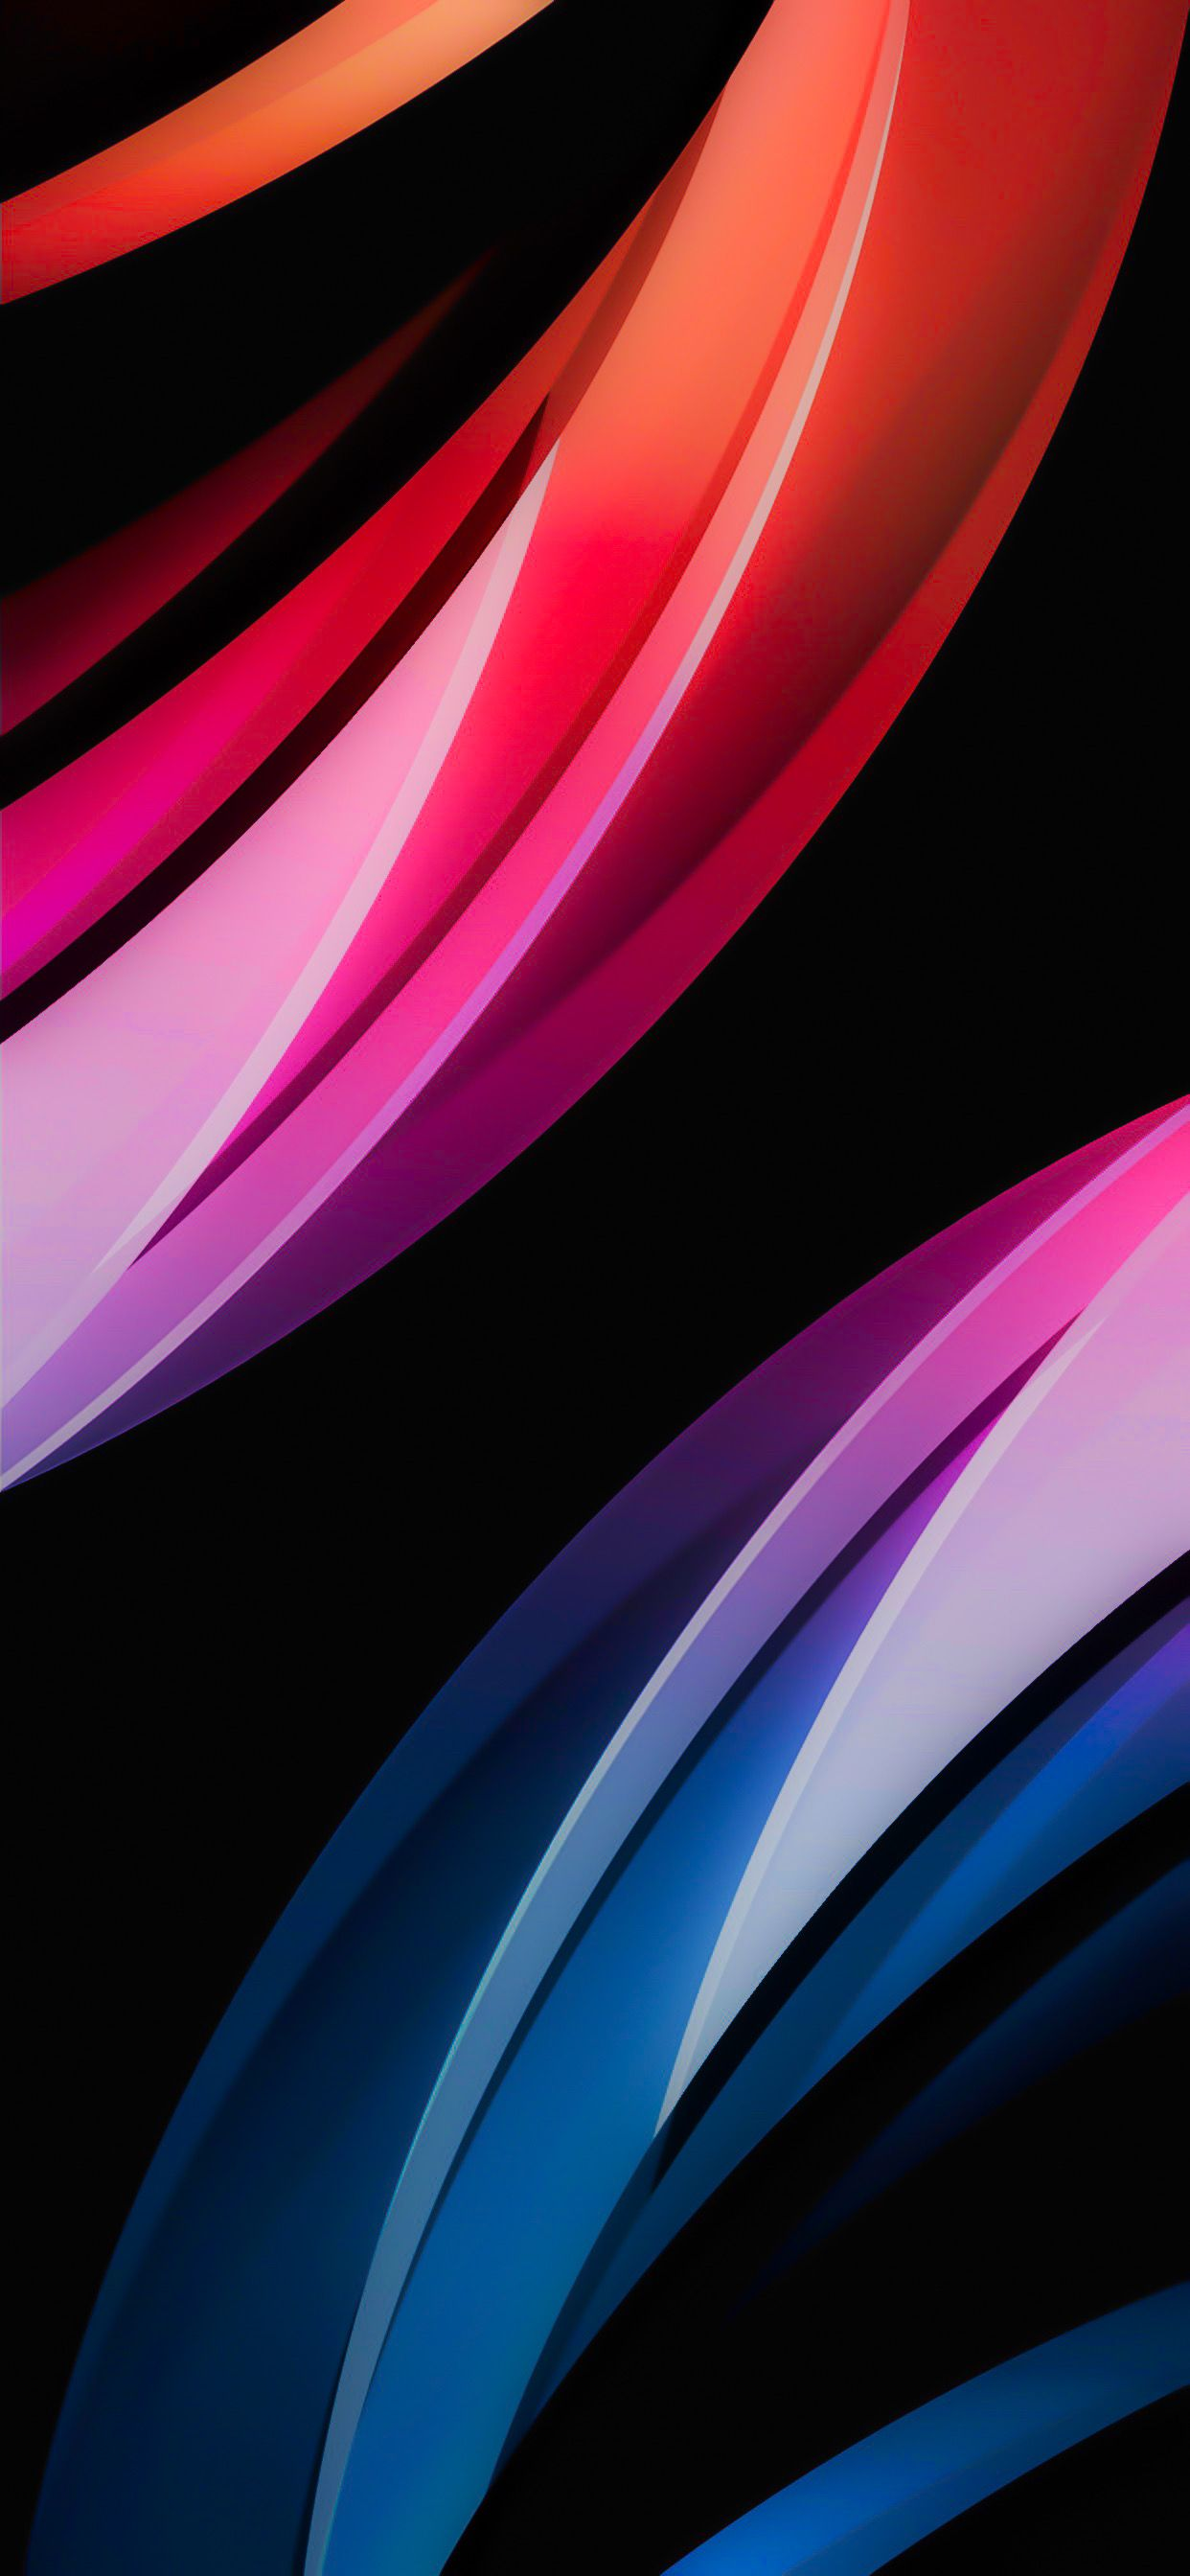 Iphone 12 Concept V12 In 2020 Abstract Iphone Wallpaper Abstract Wallpaper Backgrounds Colorful Wallpaper